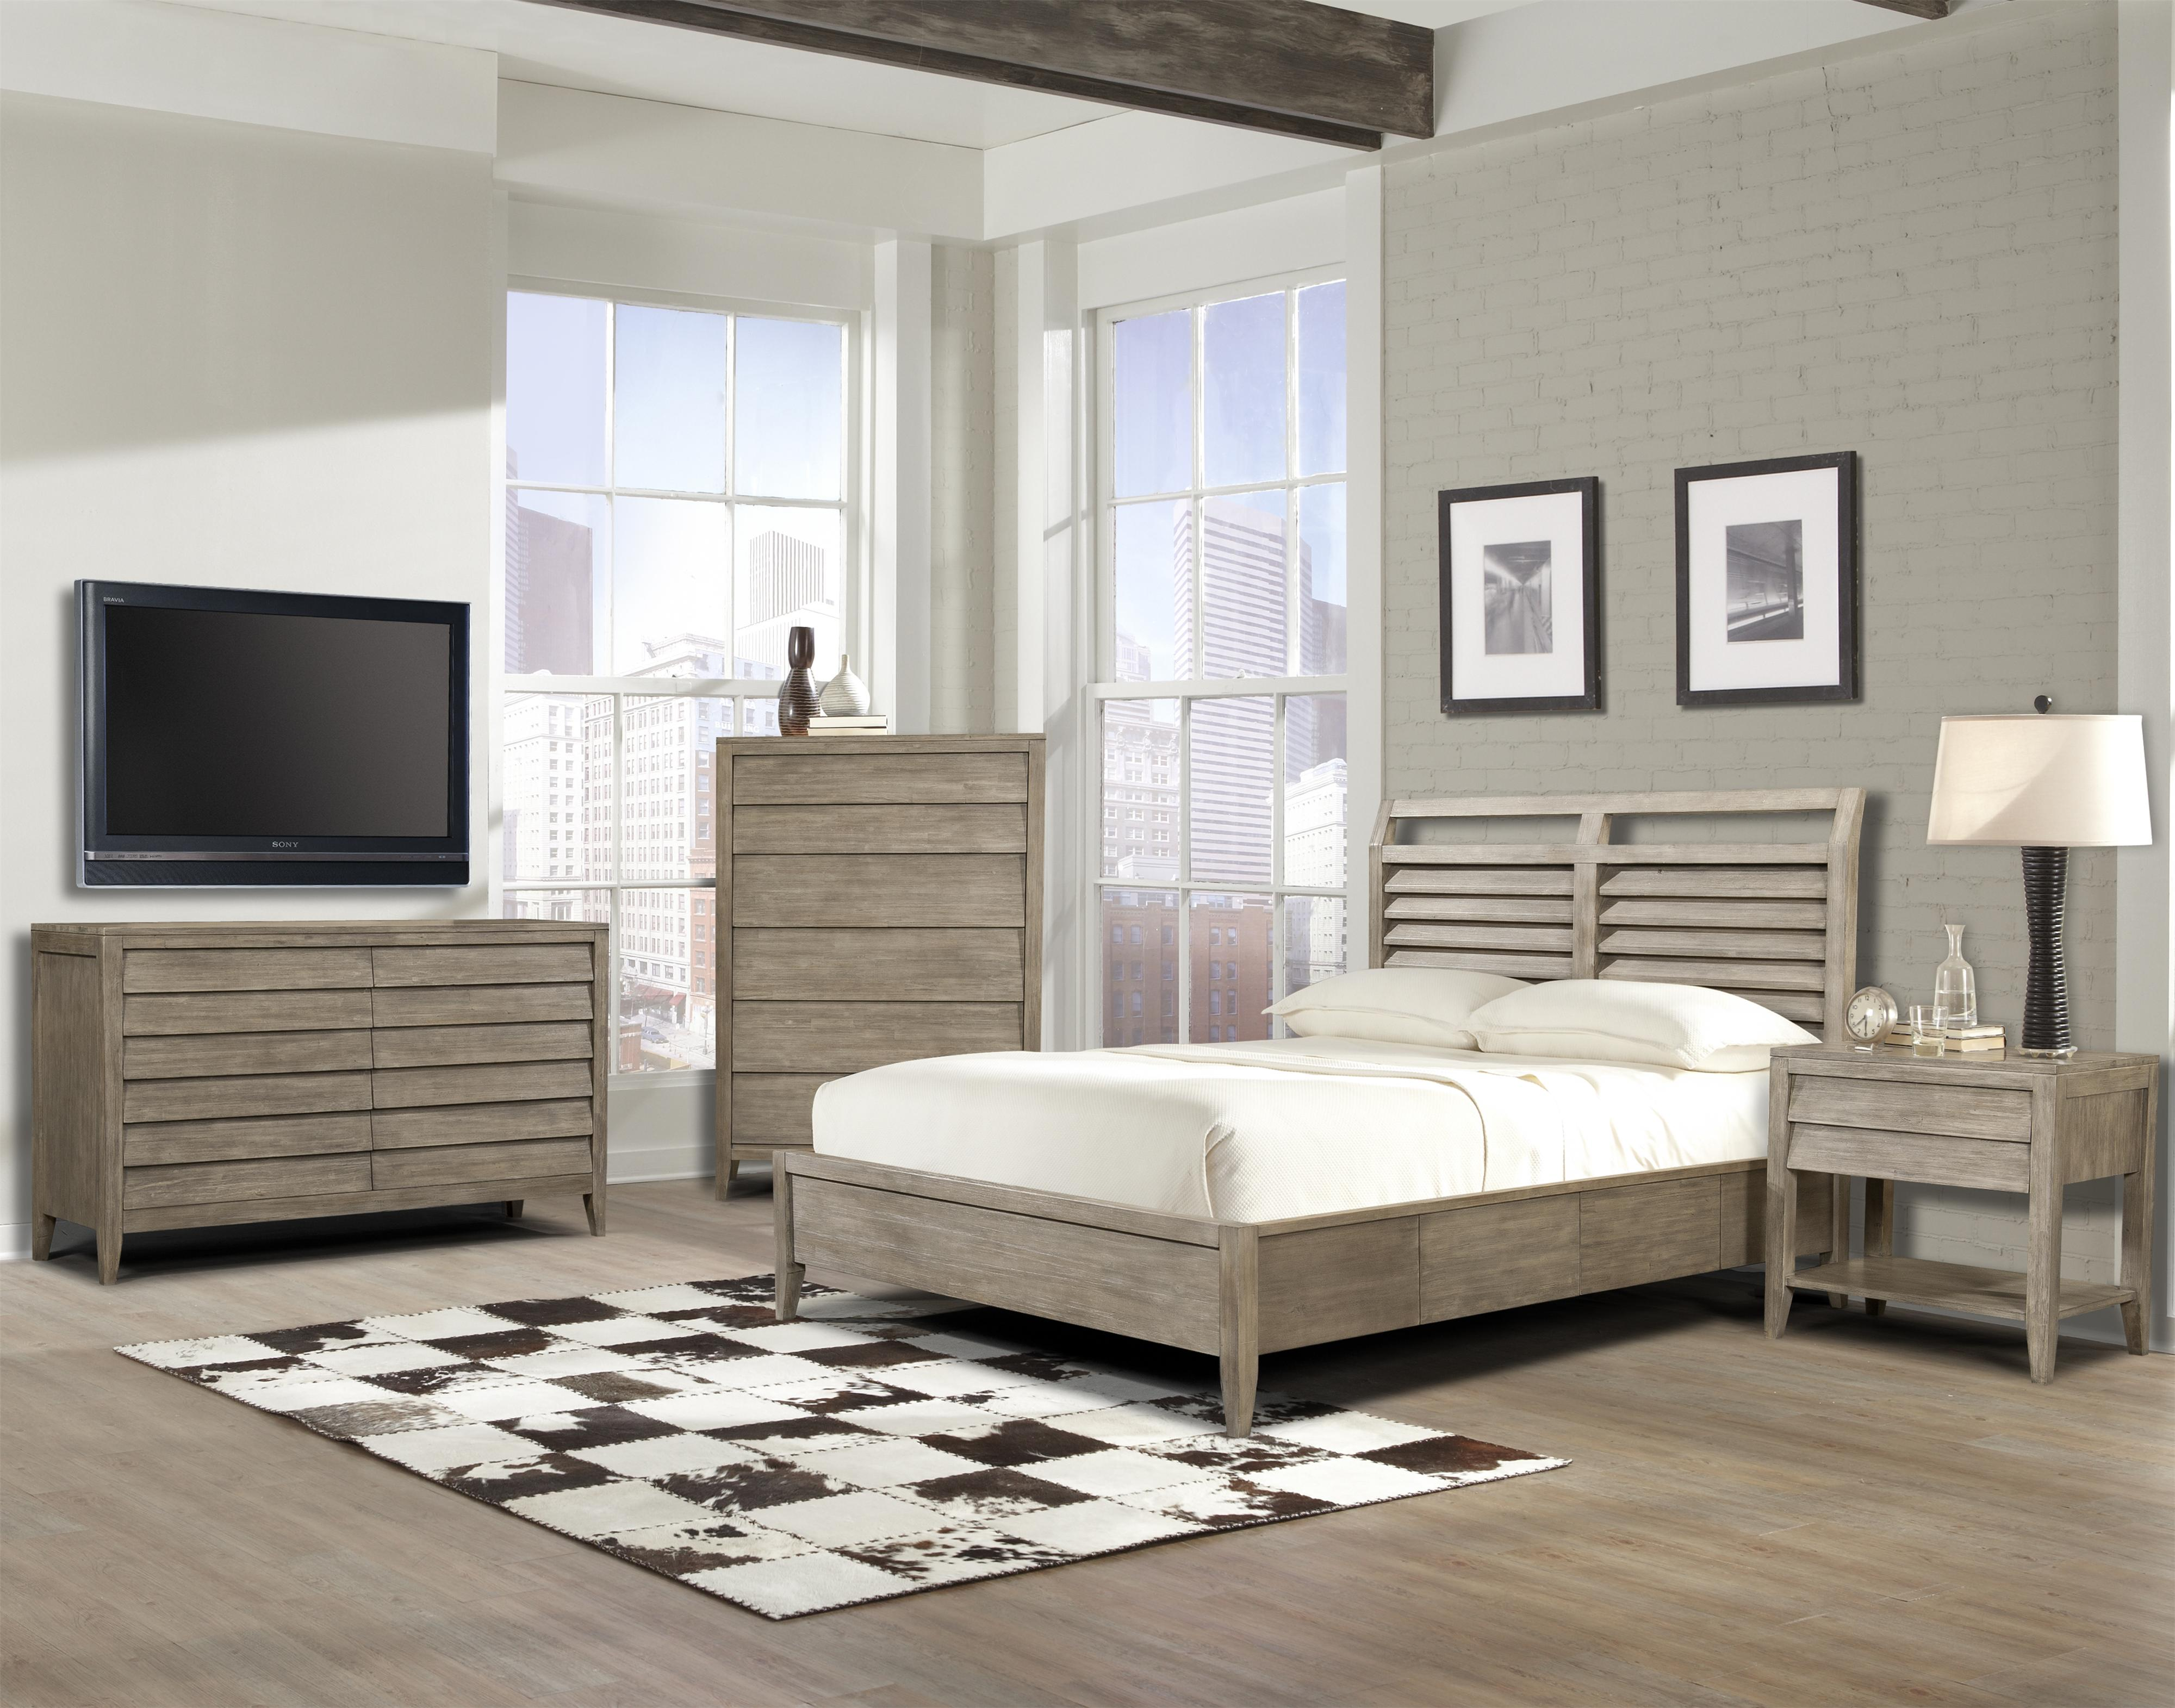 King Shutter Double Sided Storage Bed by Cresent Fine Furniture ...